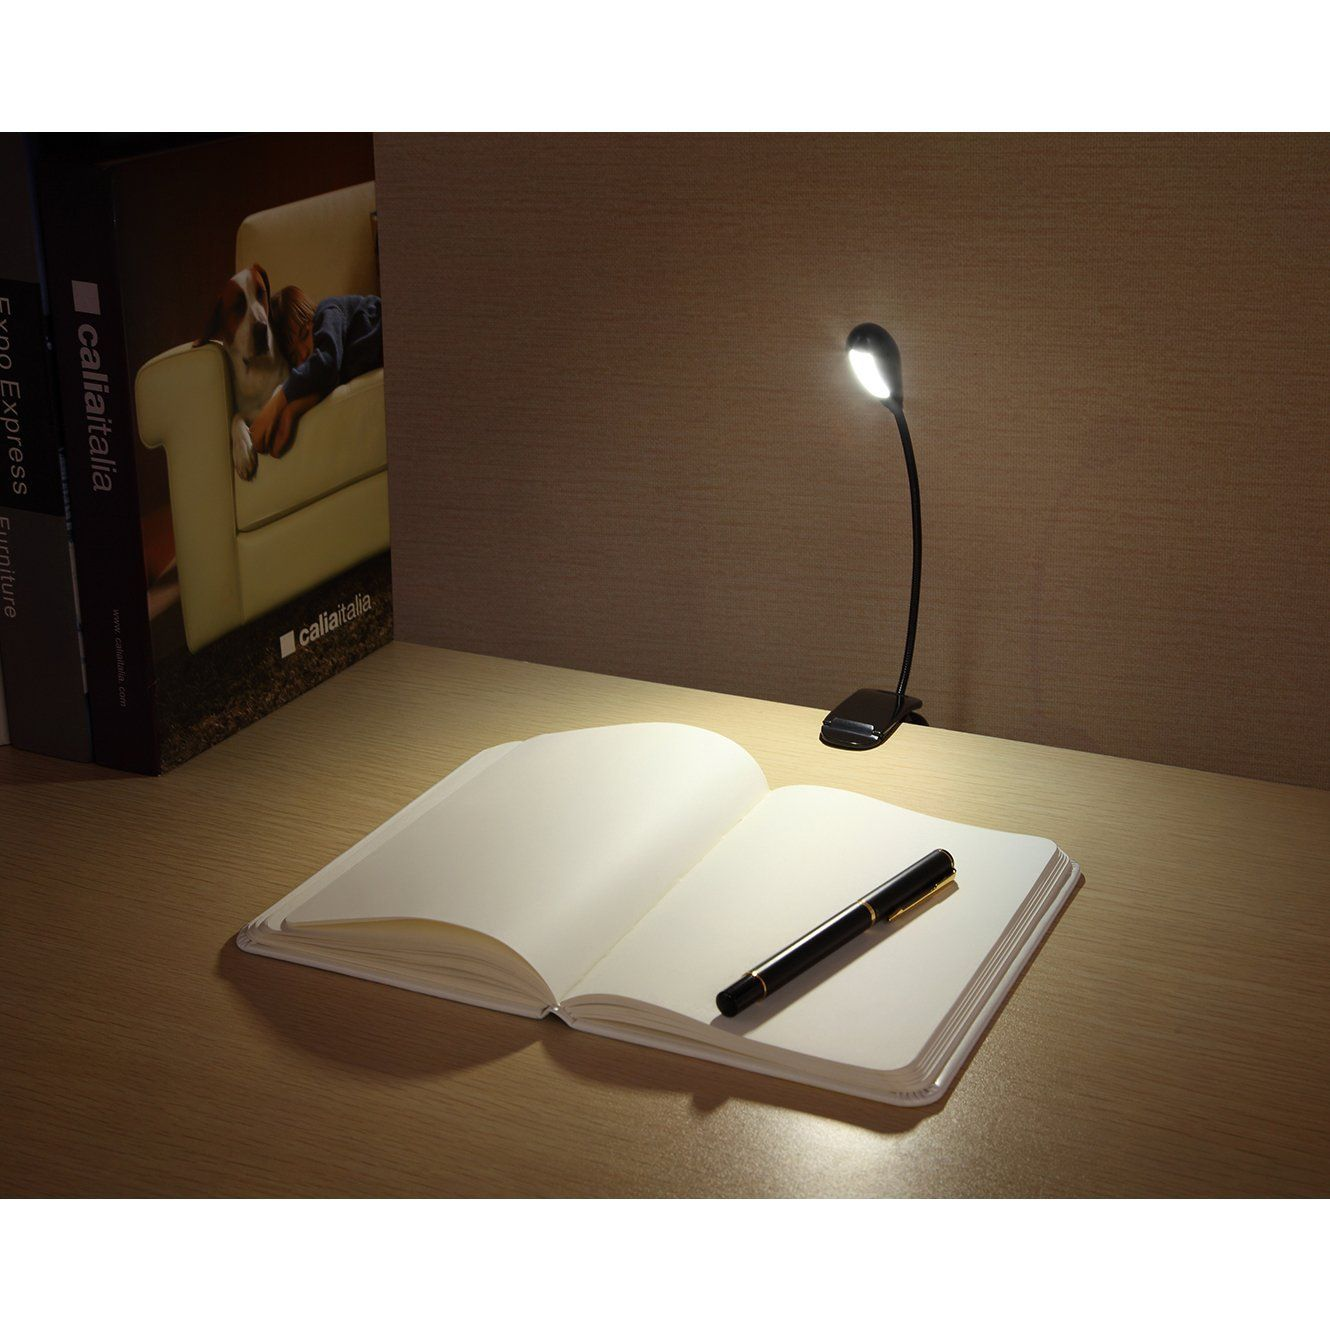 Amazon Book Light Brilliant This Book Light Comes Really Recommended On Amazoni Might Need Review